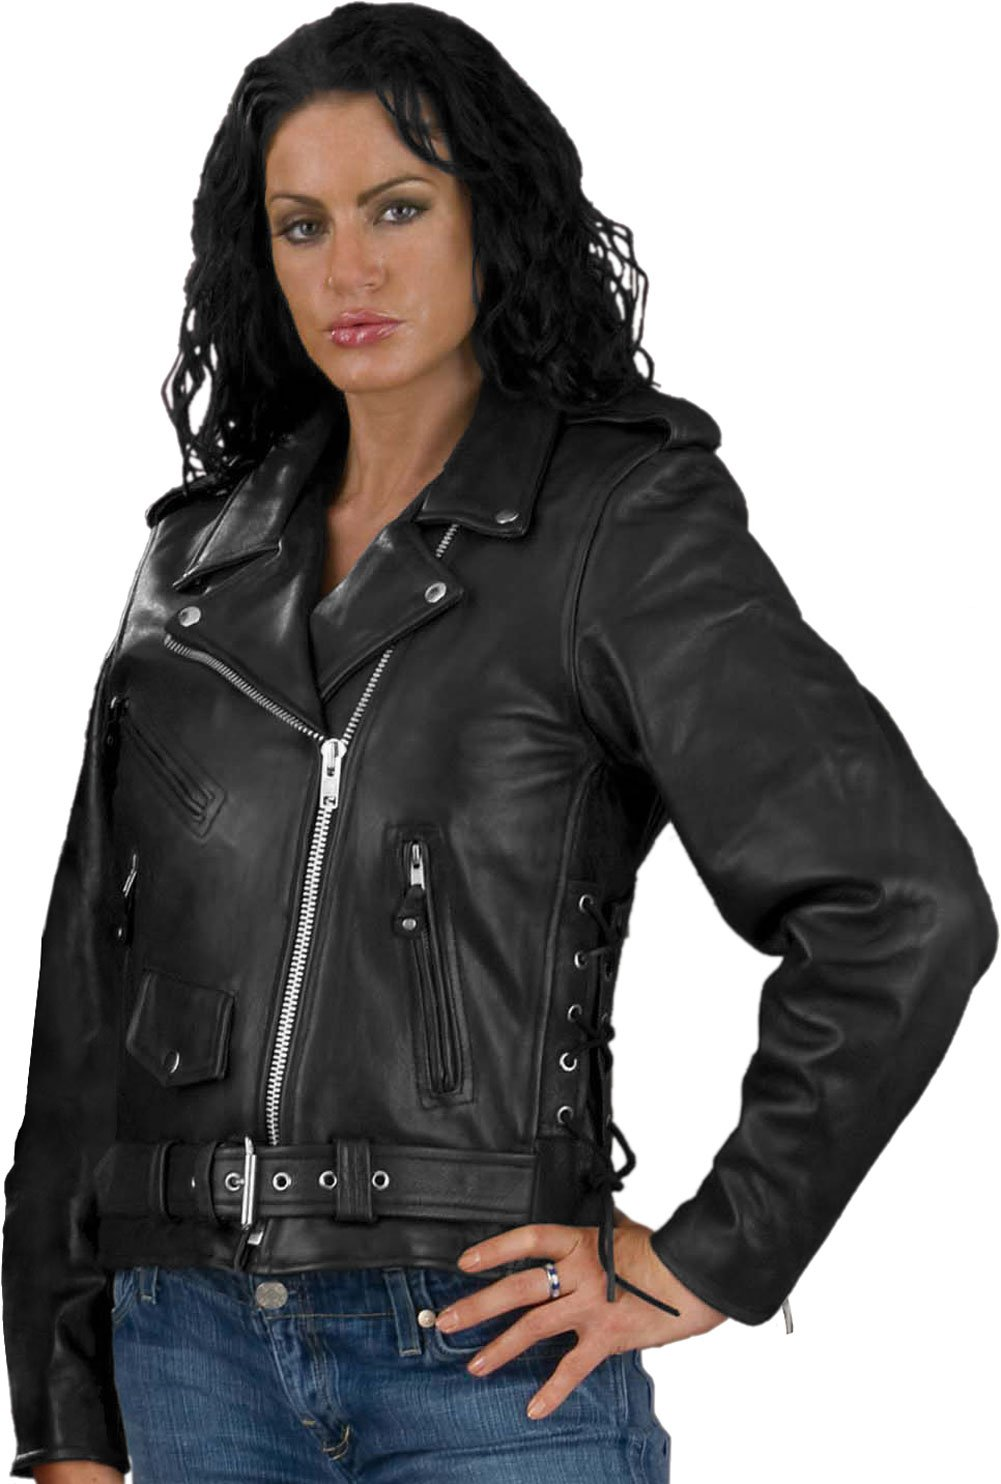 LC2700 Ladies Black Basic Classic Motorcycle Premium Leather Jacket with side laces by Milwaukee Leather (Image #1)